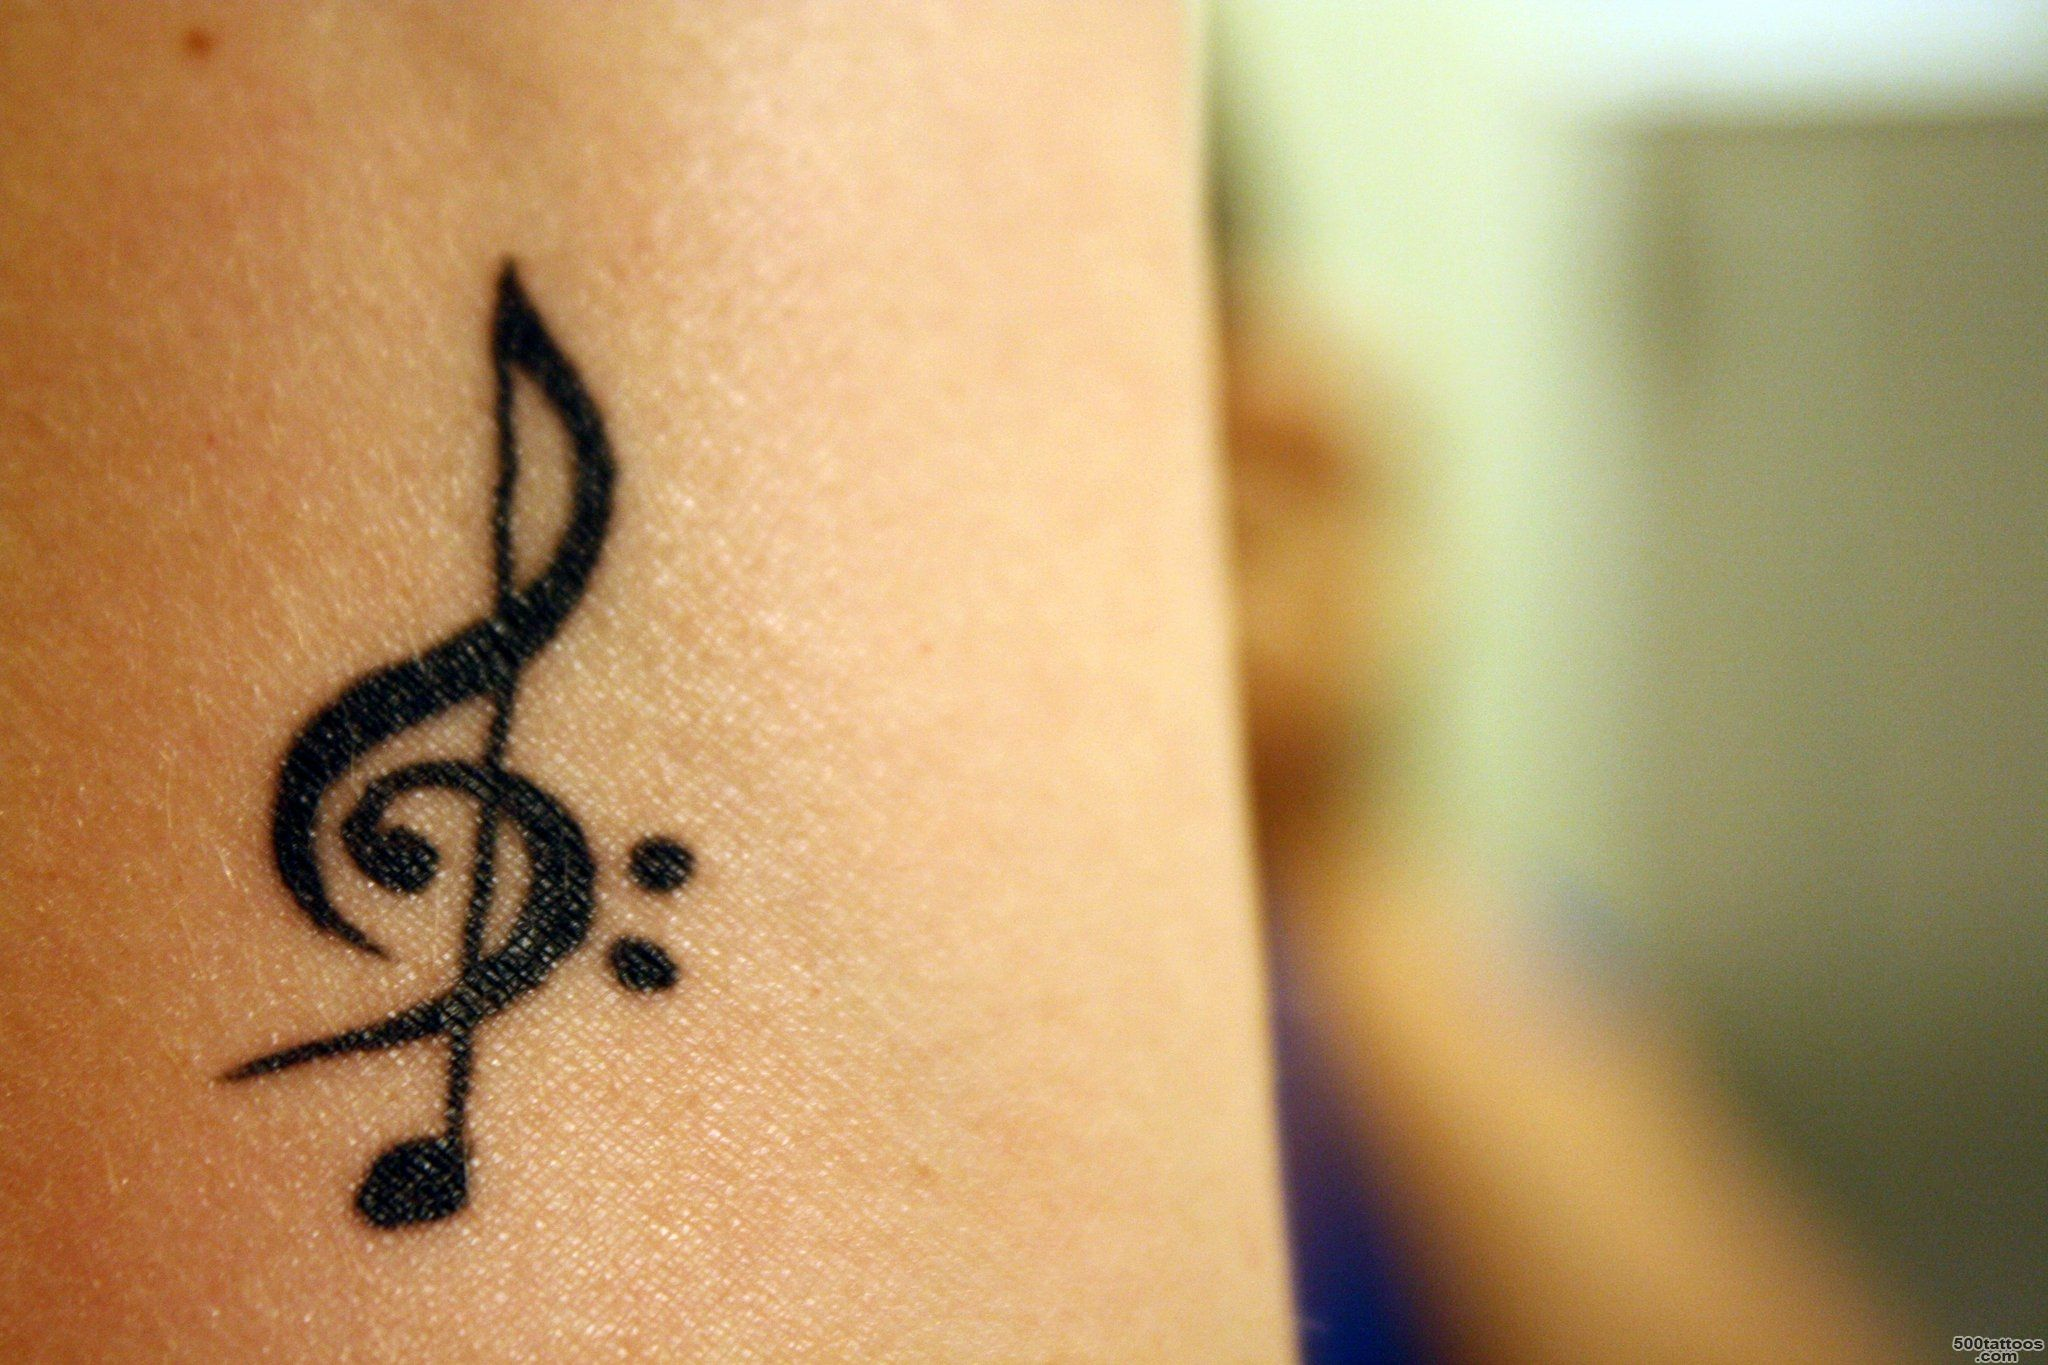 Top Clef Tattoo 2 Images for Pinterest Tattoos_30